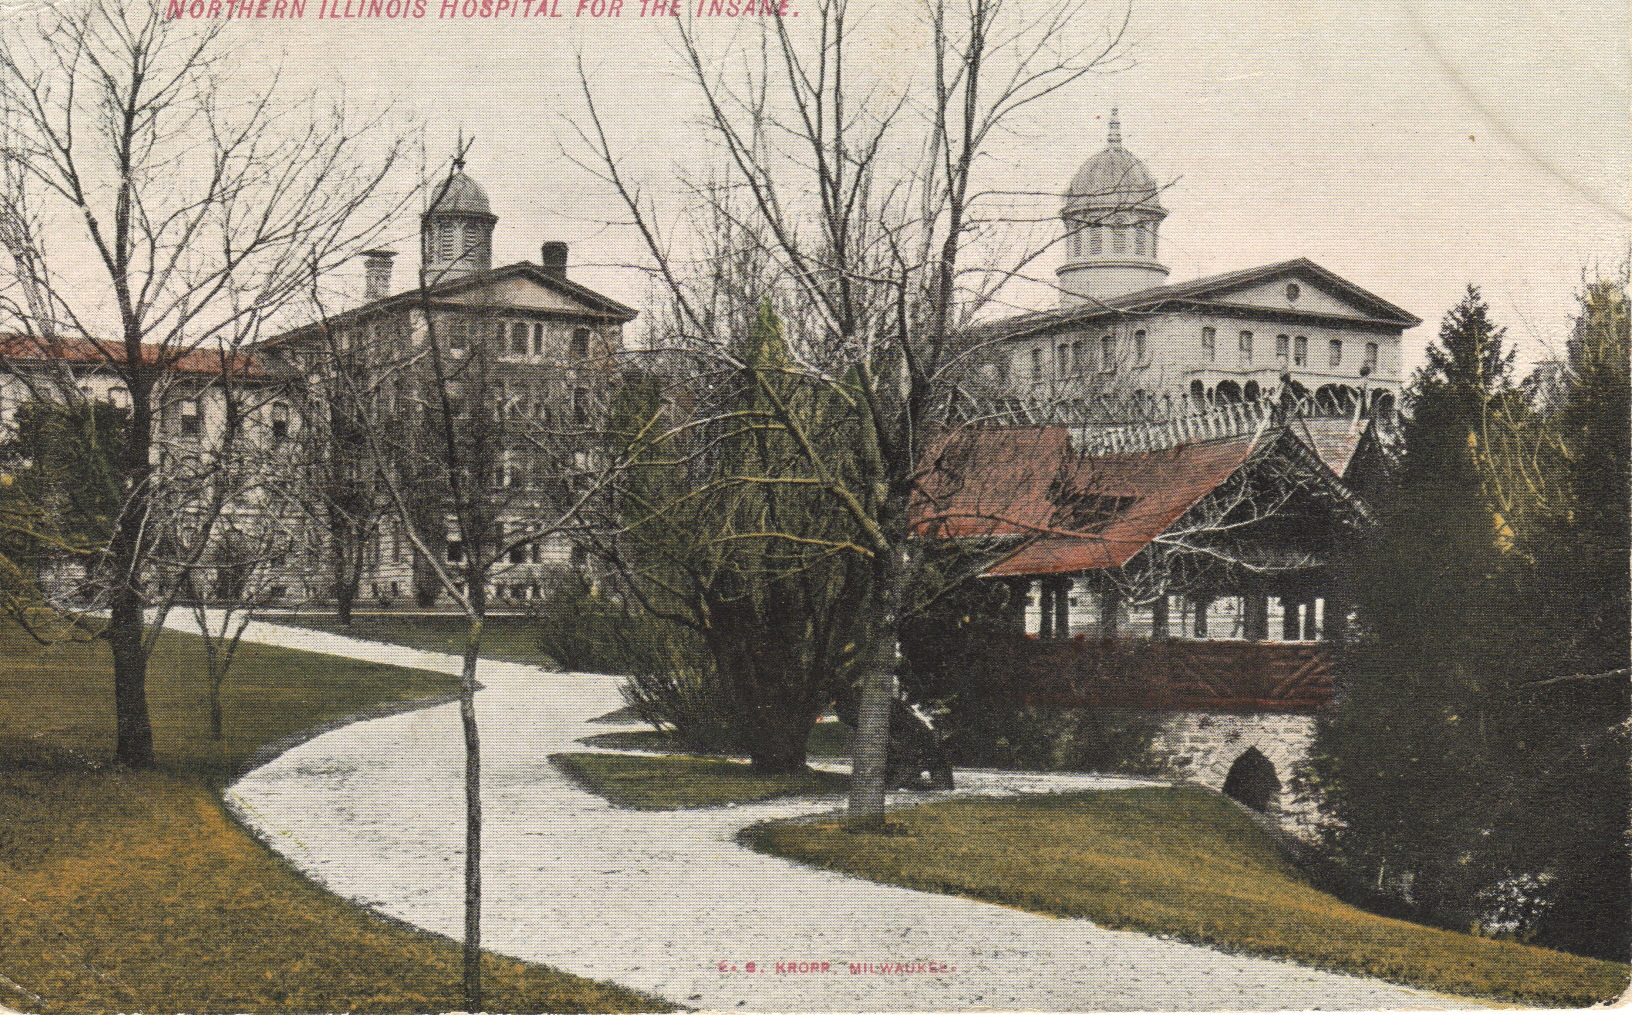 Elgin-State-Mental-Hospital---Northern-Illinois-Hospital-for-the-Insane-1908.jpg